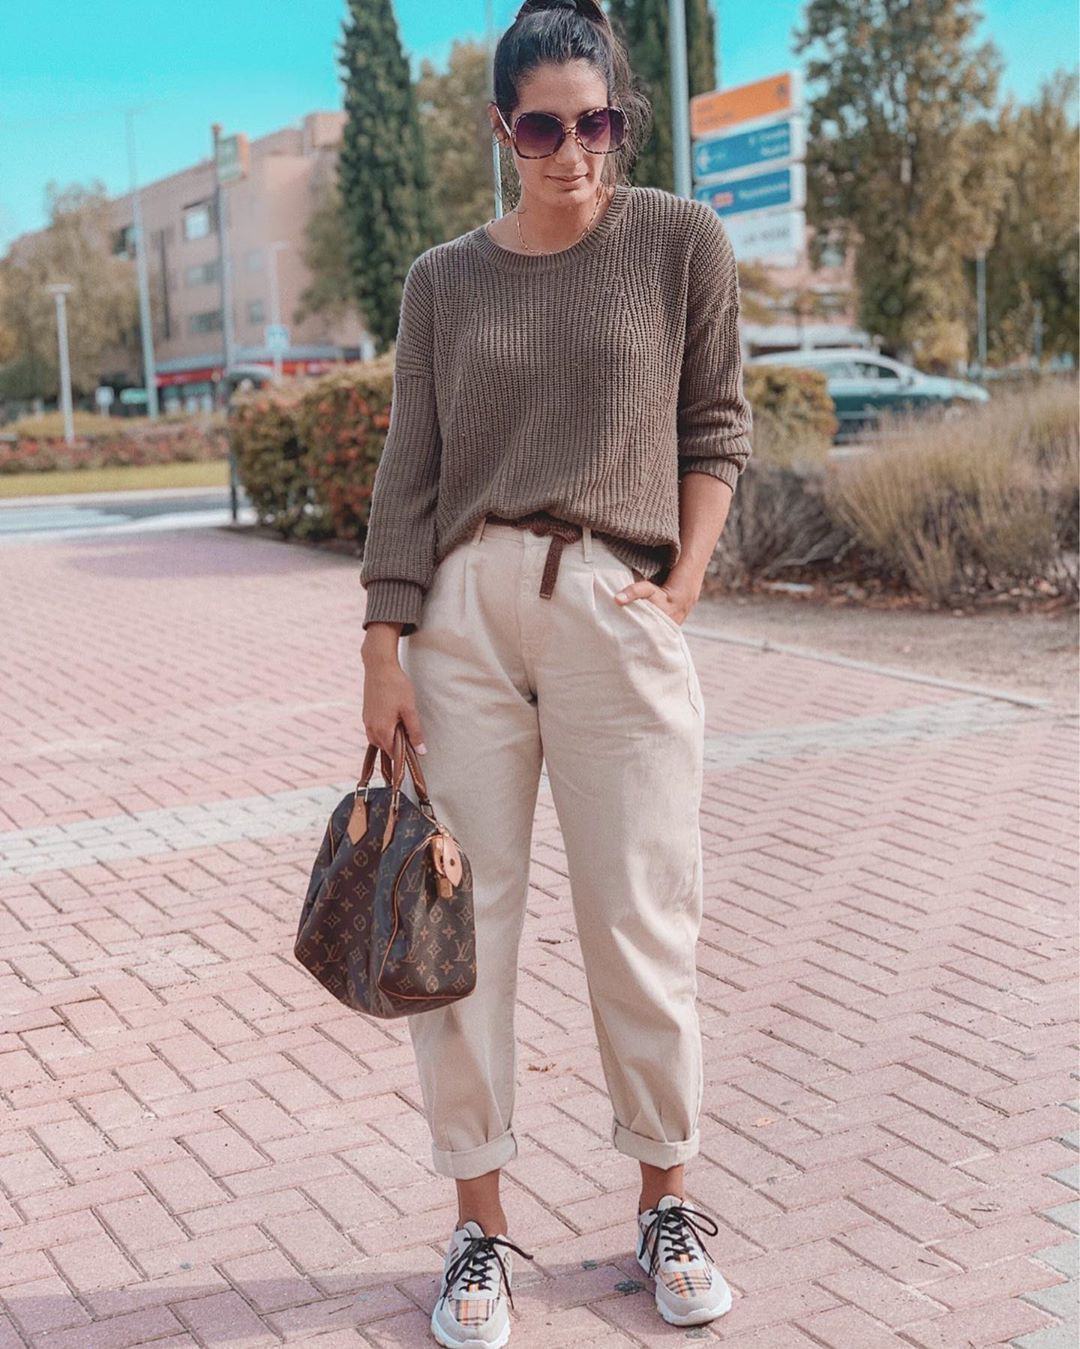 Beige and brown colour dress with sportswear, mom jeans, trousers